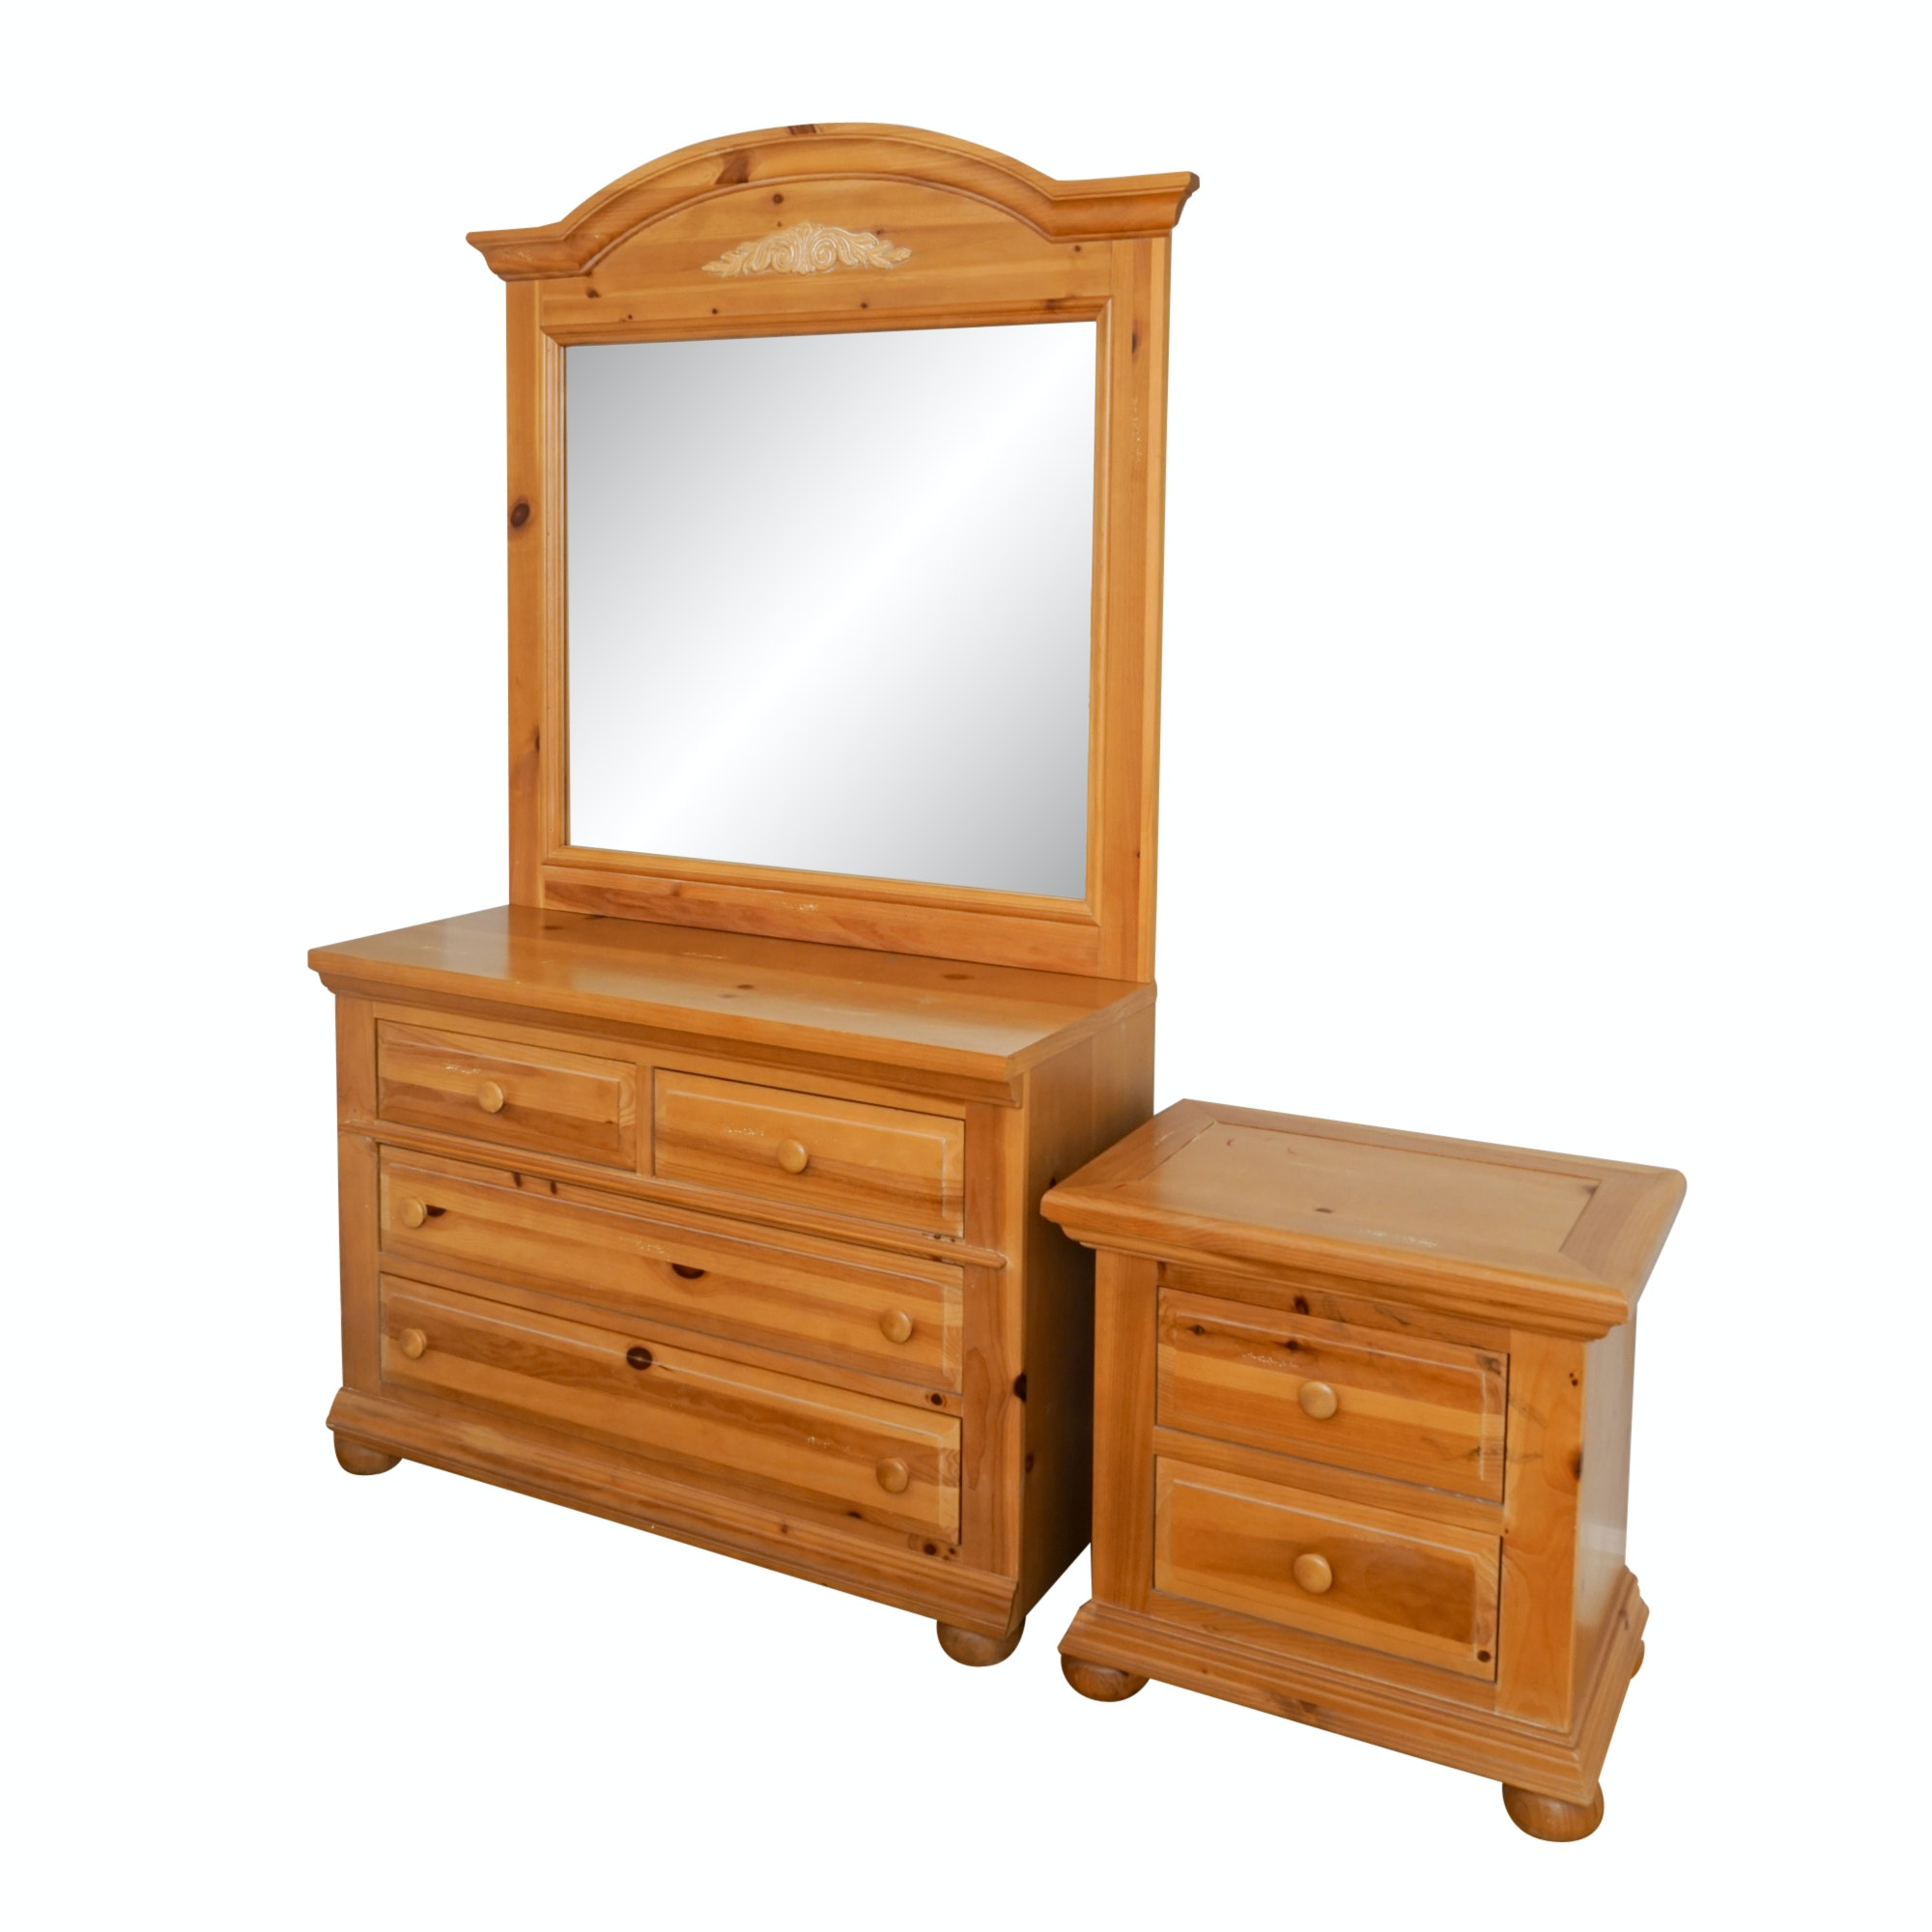 Pine Dresser and Mirror with Nightstand by Broyhill